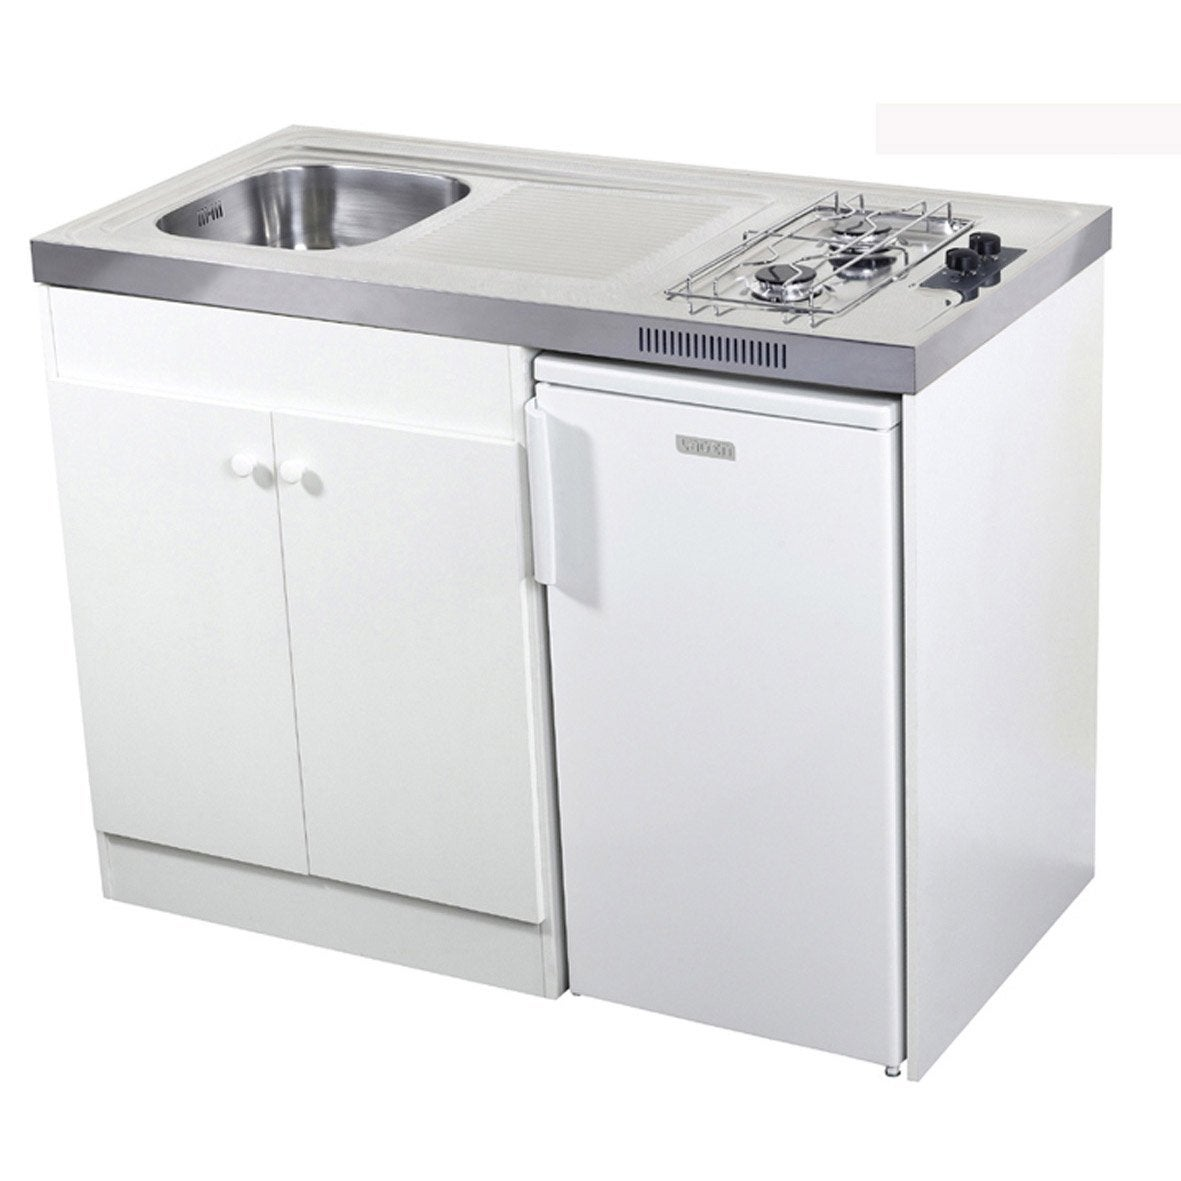 Kitchenette gaz blanc spring x x cm - Kitchenette leroy merlin ...